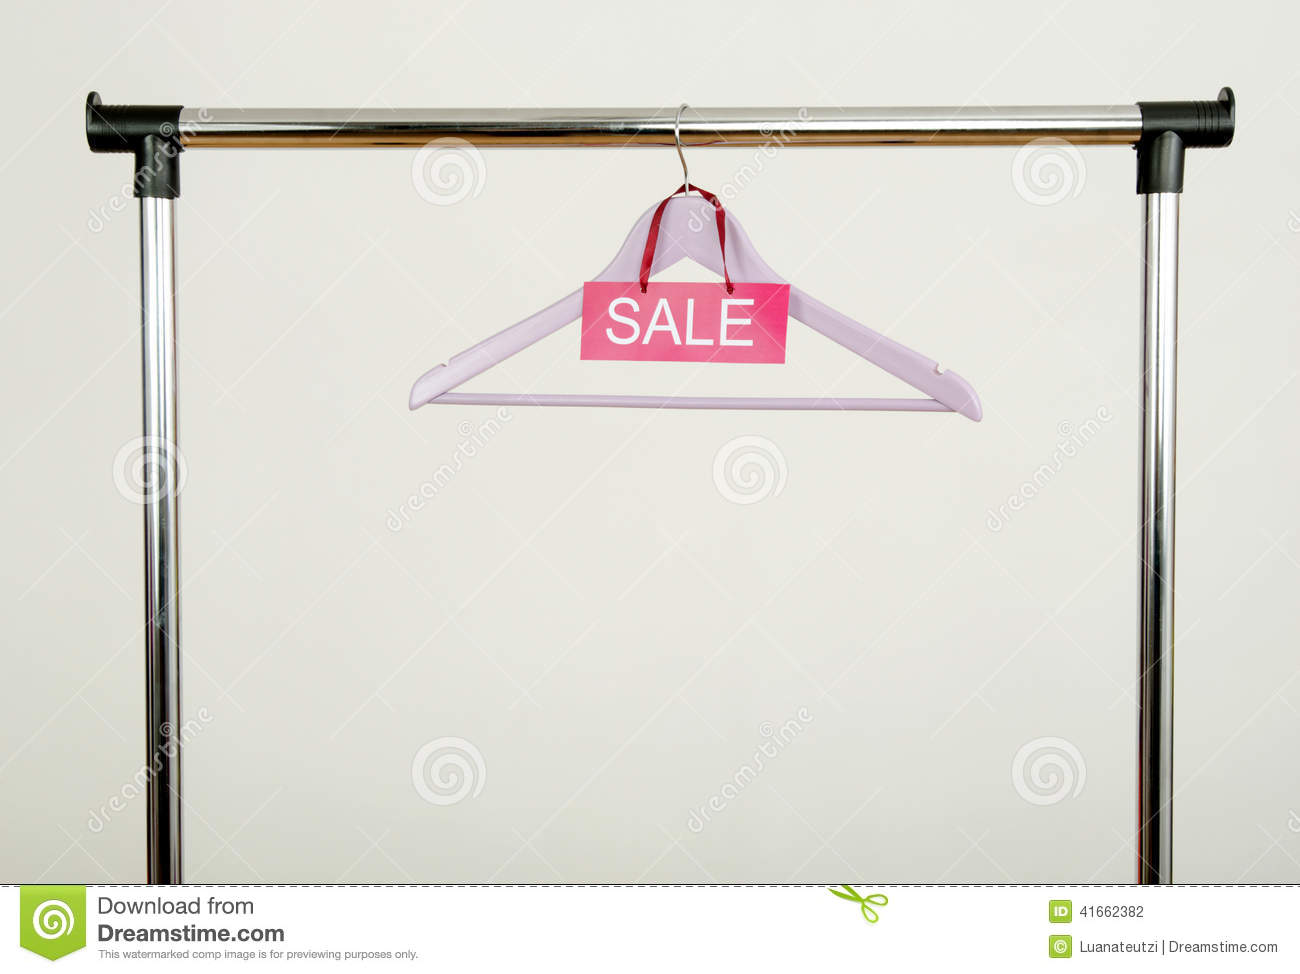 photo sign rack clothes of empty stock and a plastic image sale with big hangers colorful download